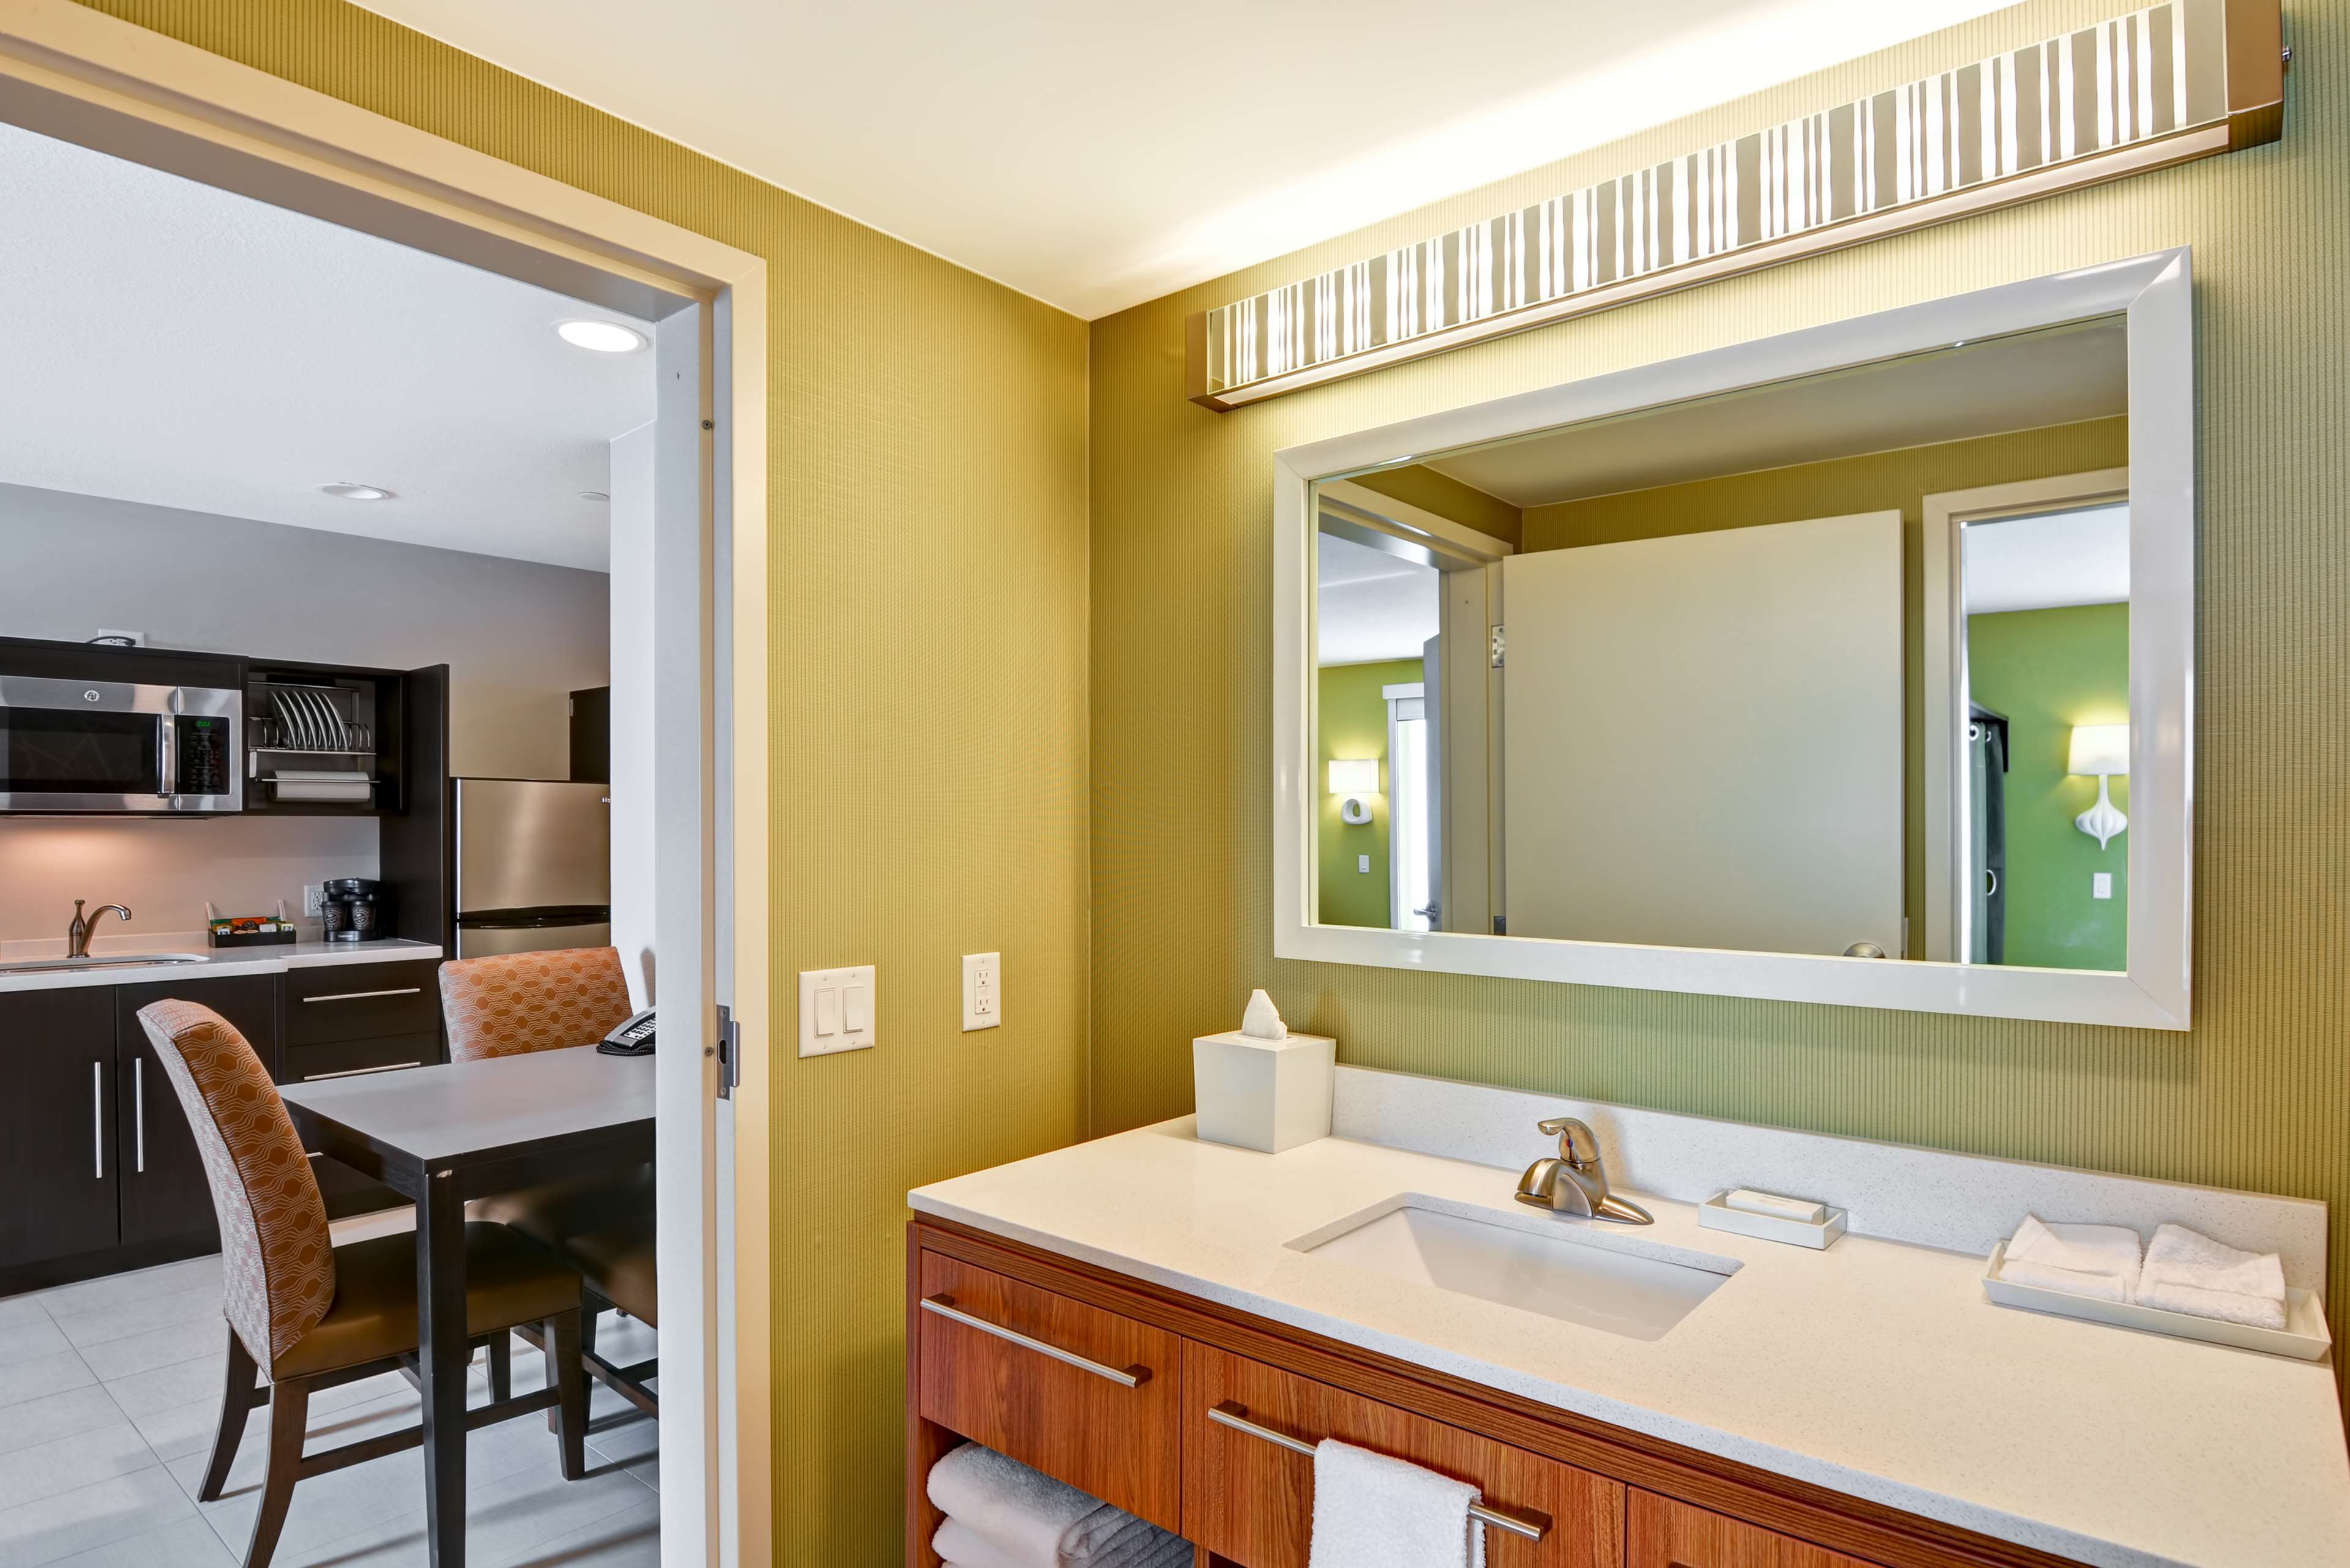 Home2 Suites by Hilton Green Bay image 18